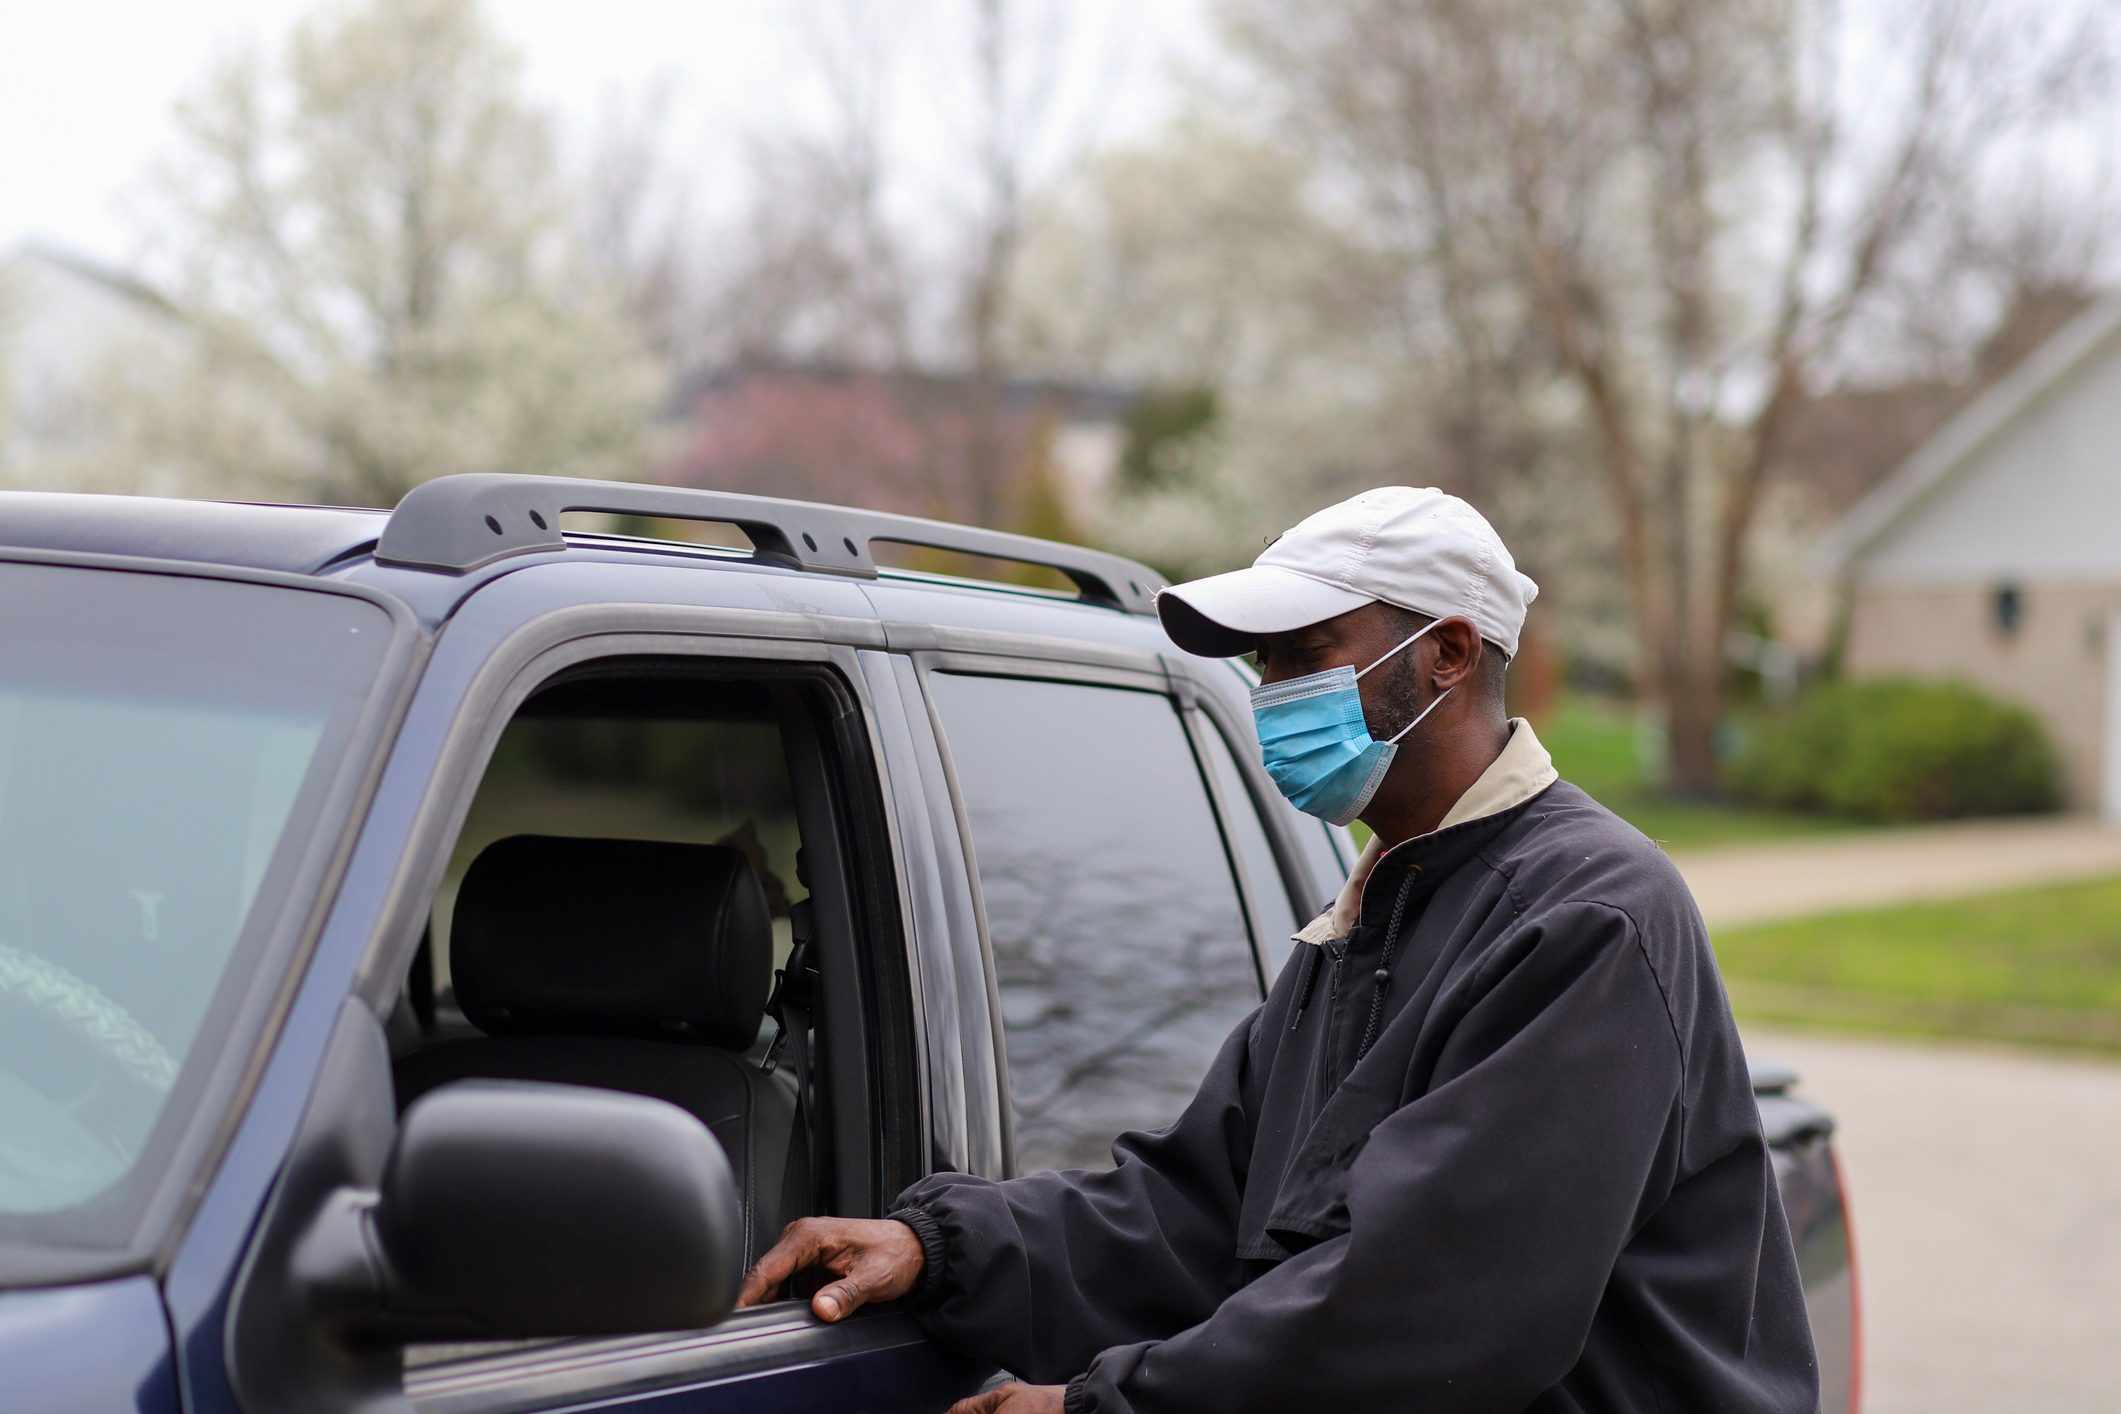 man wearing mask outside getting into car